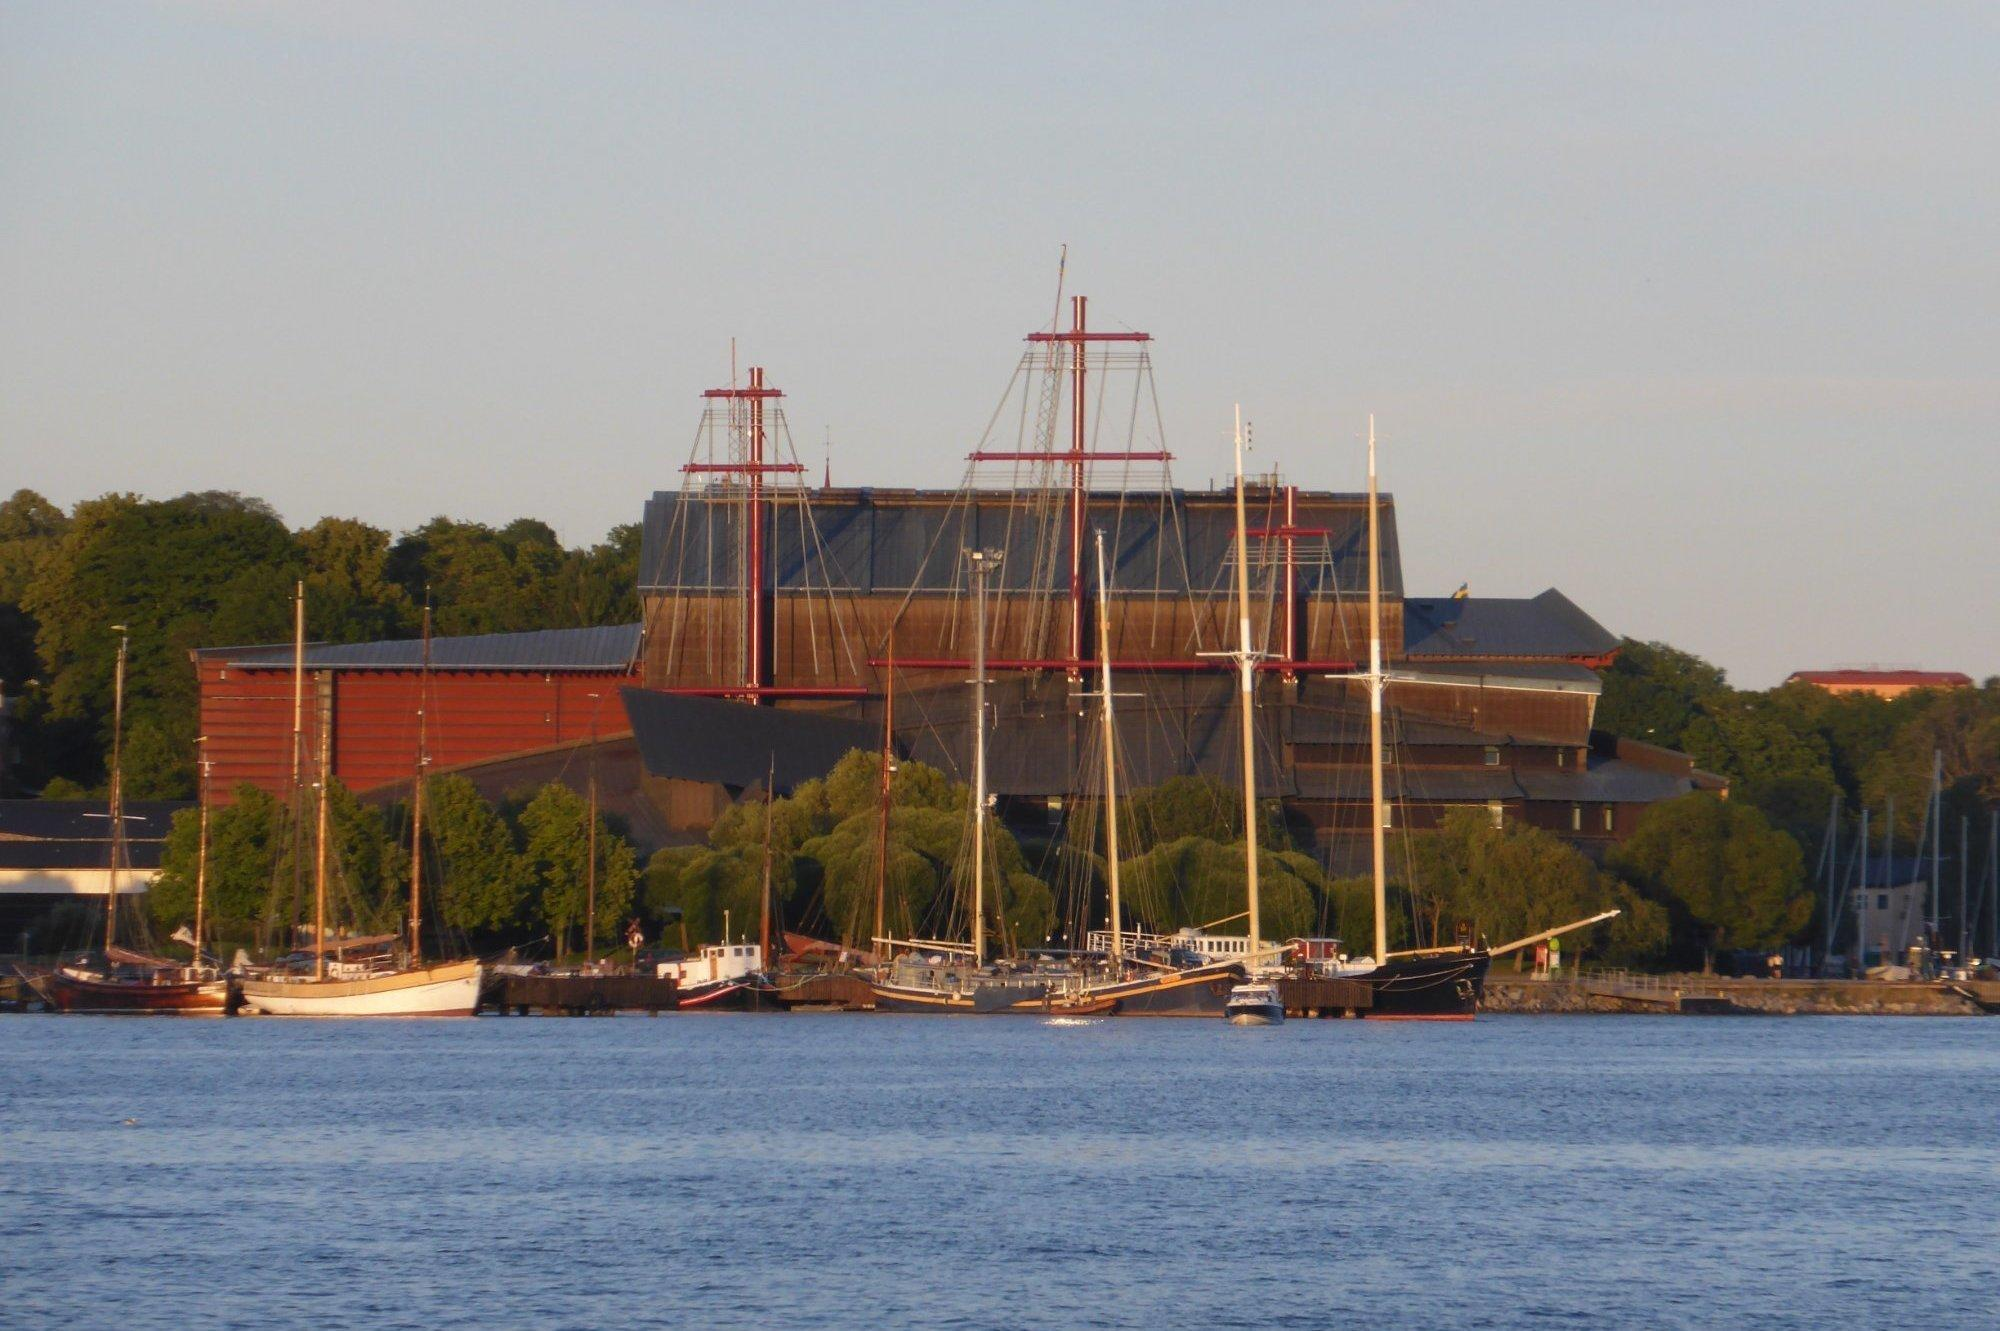 """The <a href=""""http://www.vasamuseet.se/en/"""" target=""""_blank"""">Vasa Museum</a> in <a href=""""http://travel.aol.co.uk/guides/stockholm/"""" target=""""_blank"""">Stockholm</a> is a maritime museum that is home to the only fully intact 17th century ship ever to be salvaged. The Vasa warship is acommanied by four other museum ships that can be found in moored in the harbour outside. The museum first opened in 1990 and sees over a million visitors each year."""